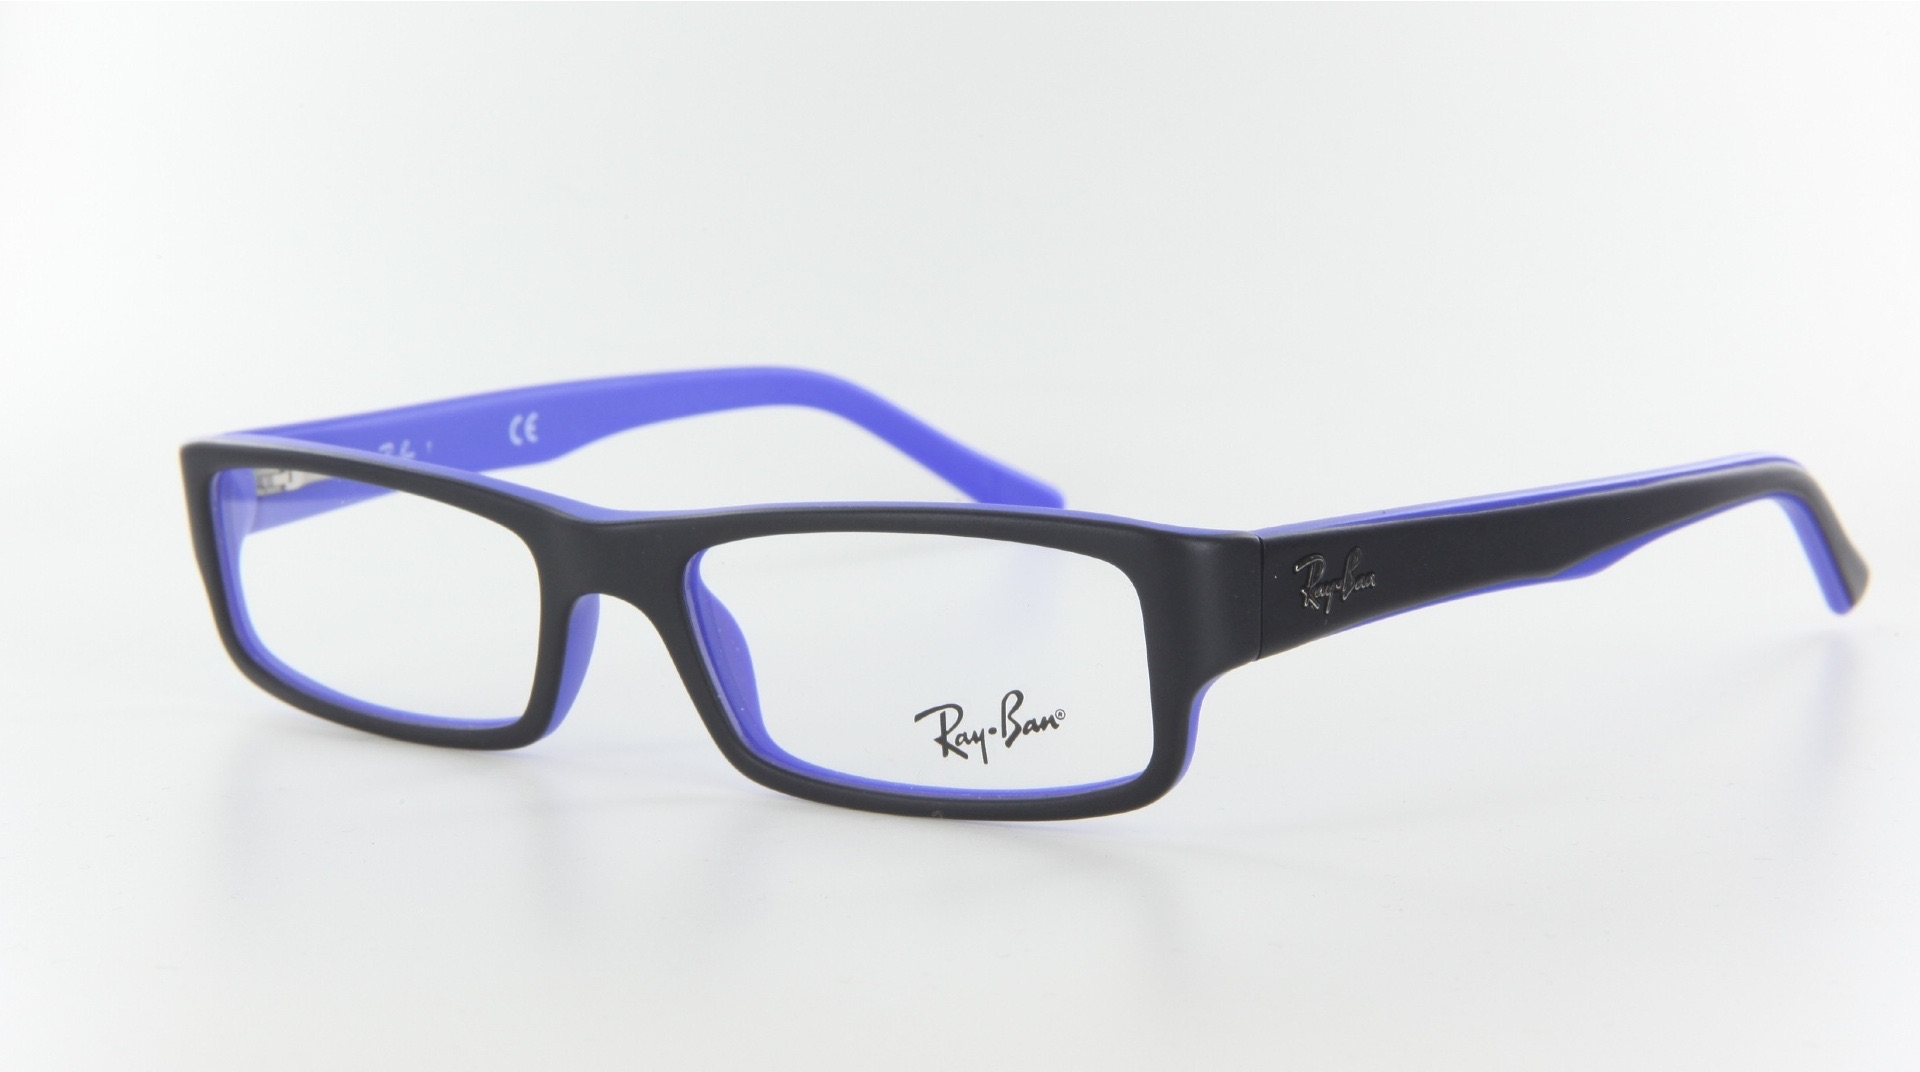 Ray-Ban - ref: 70843